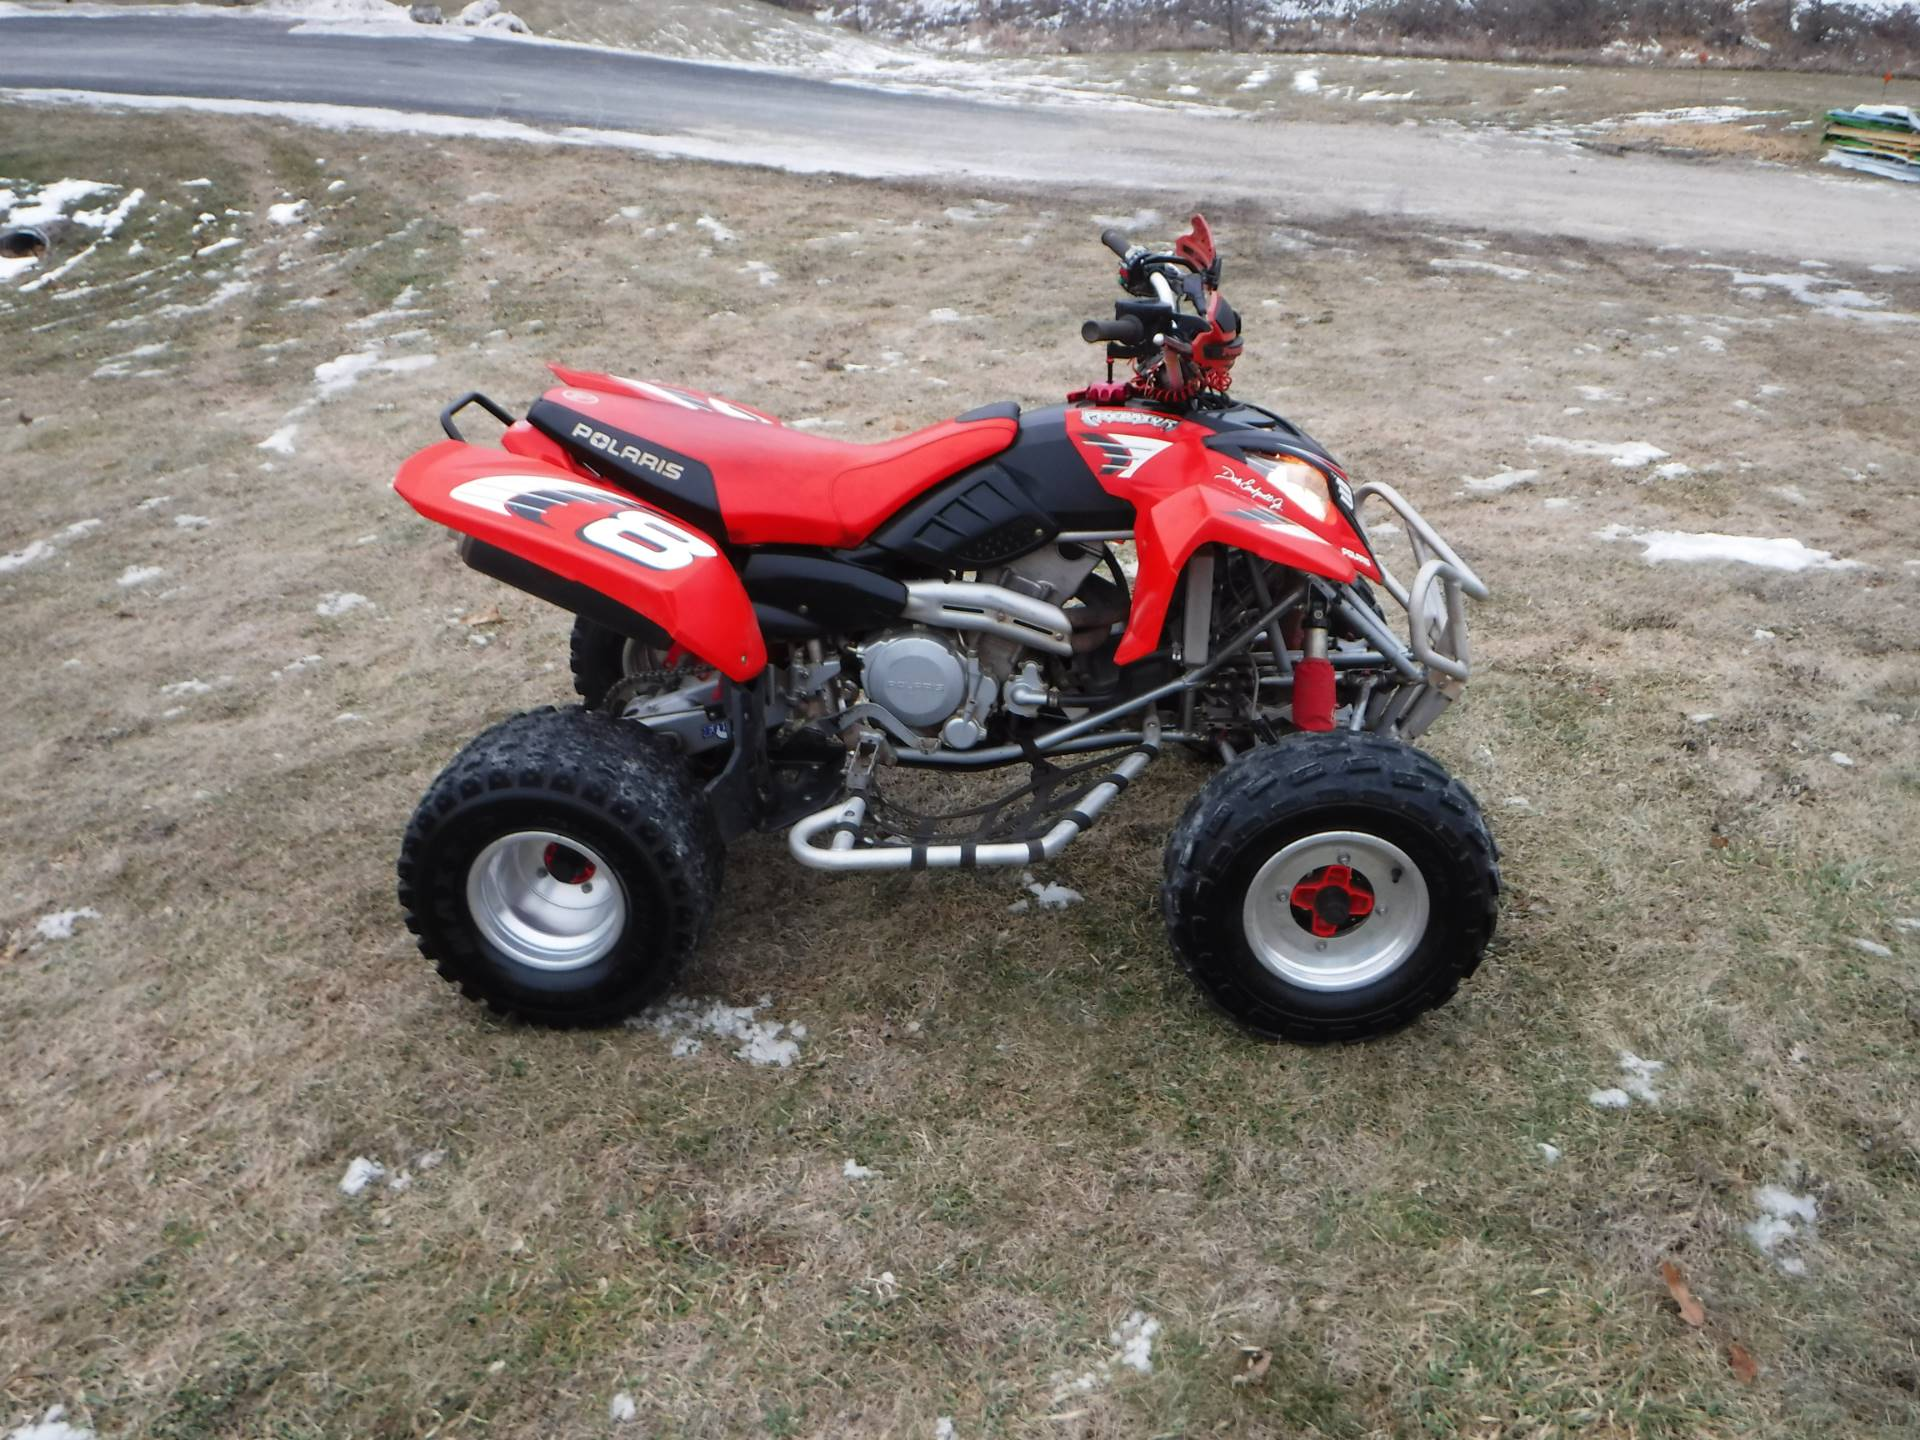 2004 Polaris Predator 500 Dale Earnhardt, Jr. Edition in Mazeppa, Minnesota